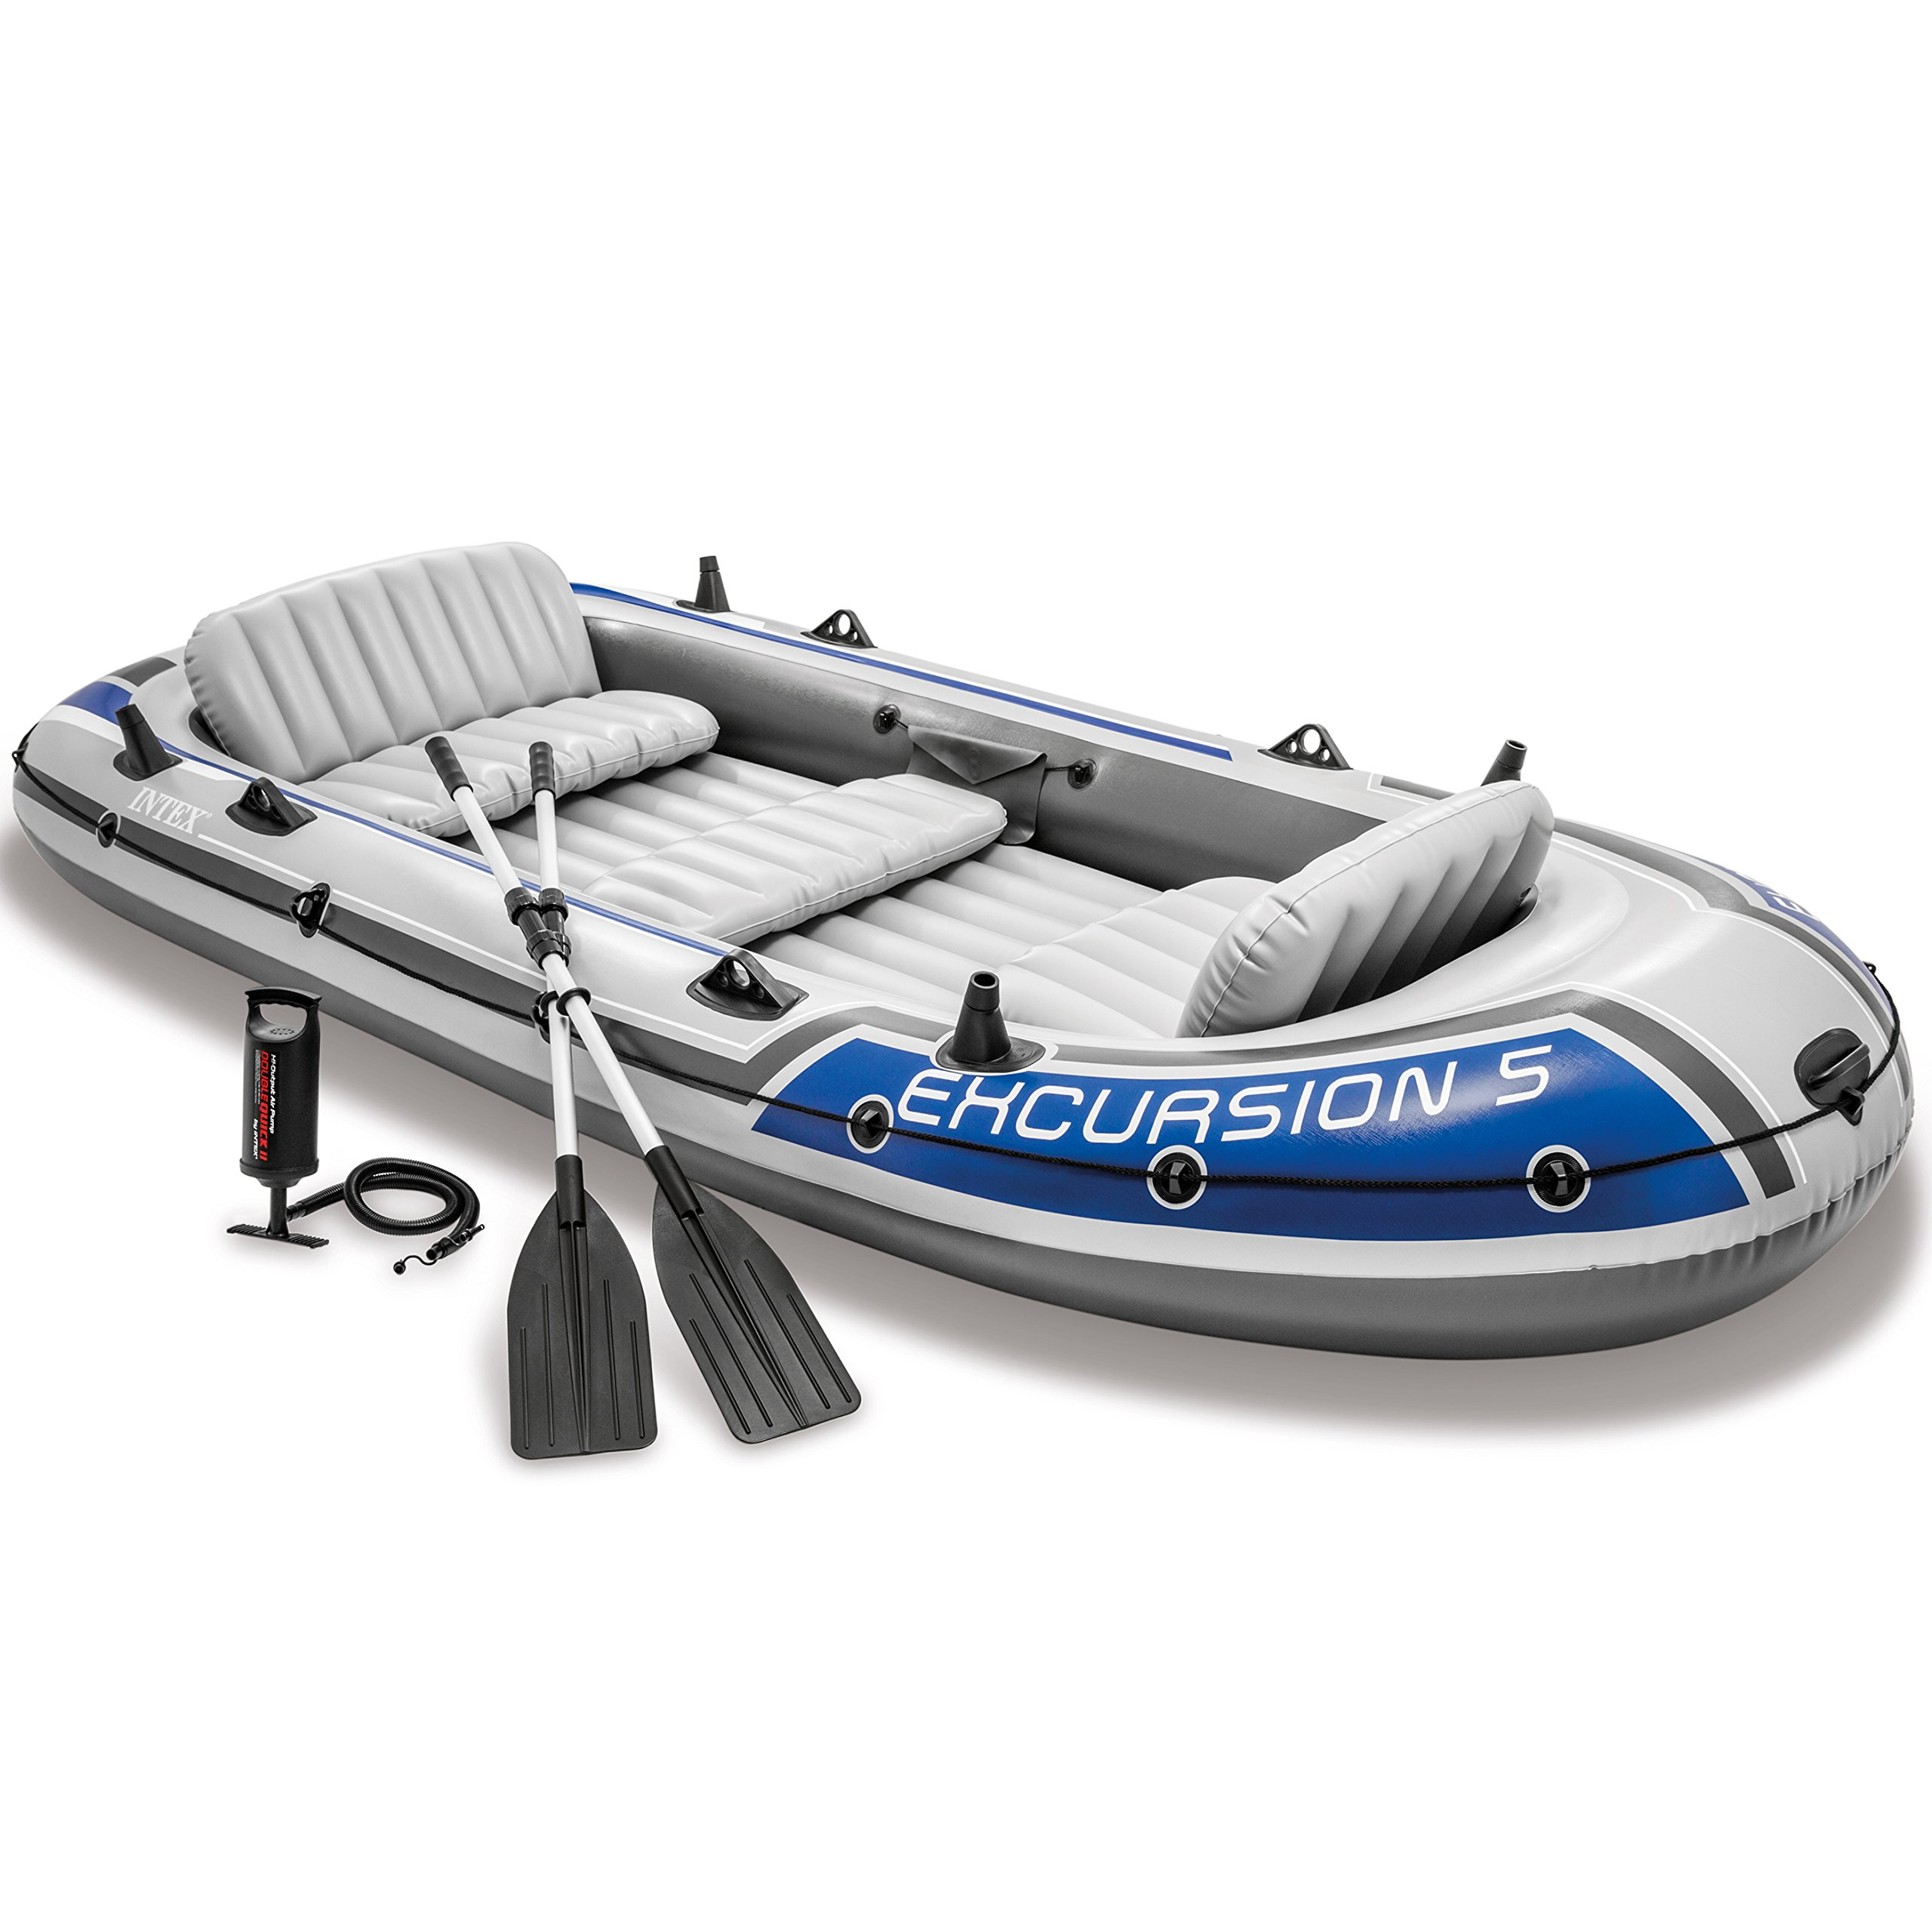 Intex Excursion 5, 5-Person Inflatable Boat Set with Aluminum Oars and High Output Air Pump (Latest Model) by Intex